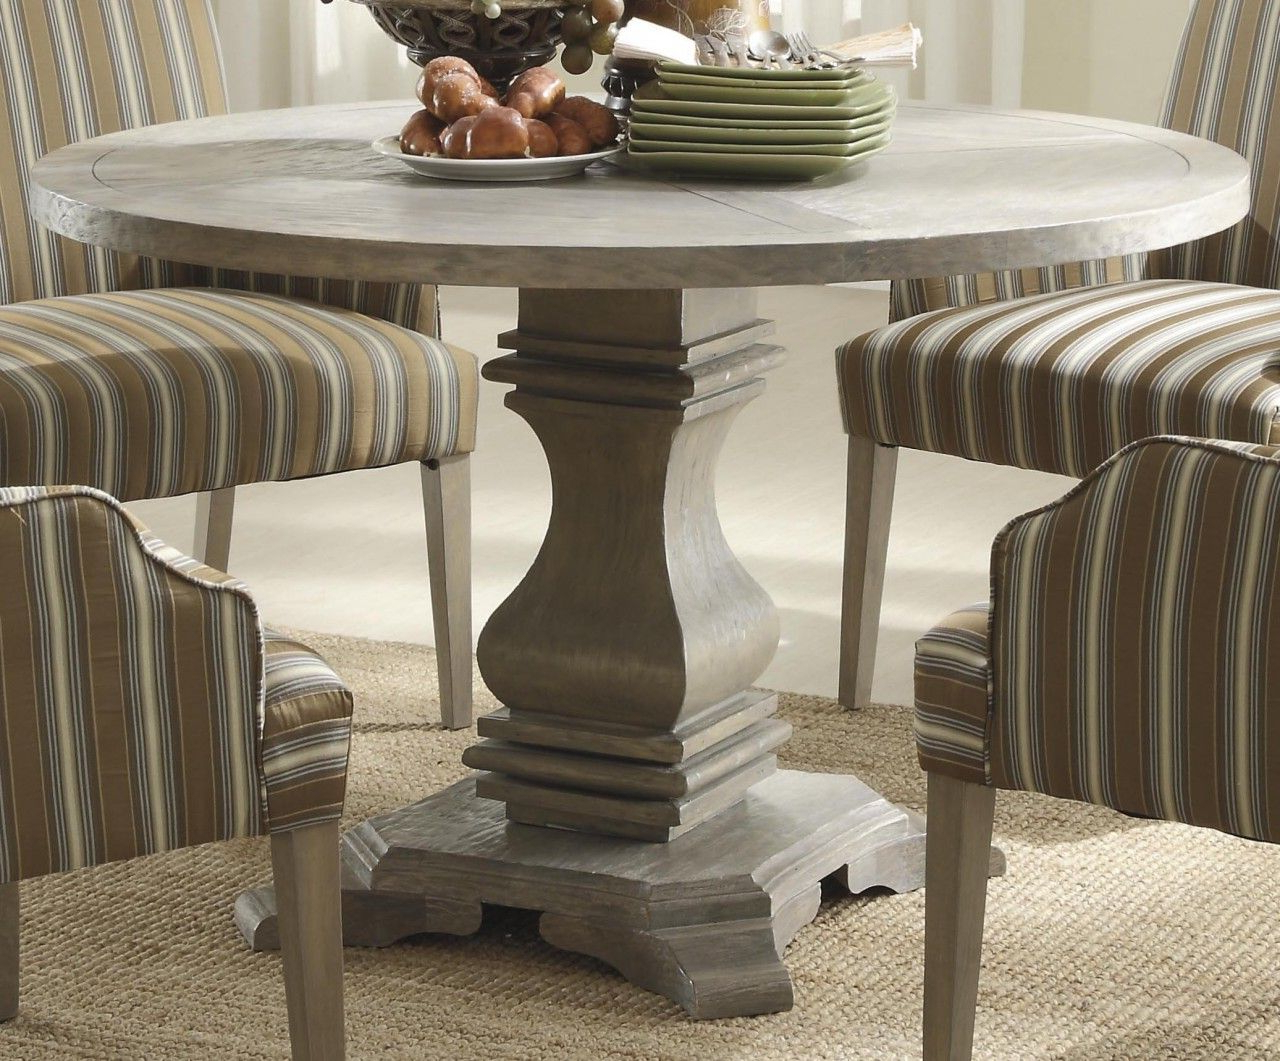 Exeter 48'' Pedestal Dining Tables Regarding Trendy Homelegance Euro Casual Dining Table In Light Brown (View 12 of 20)